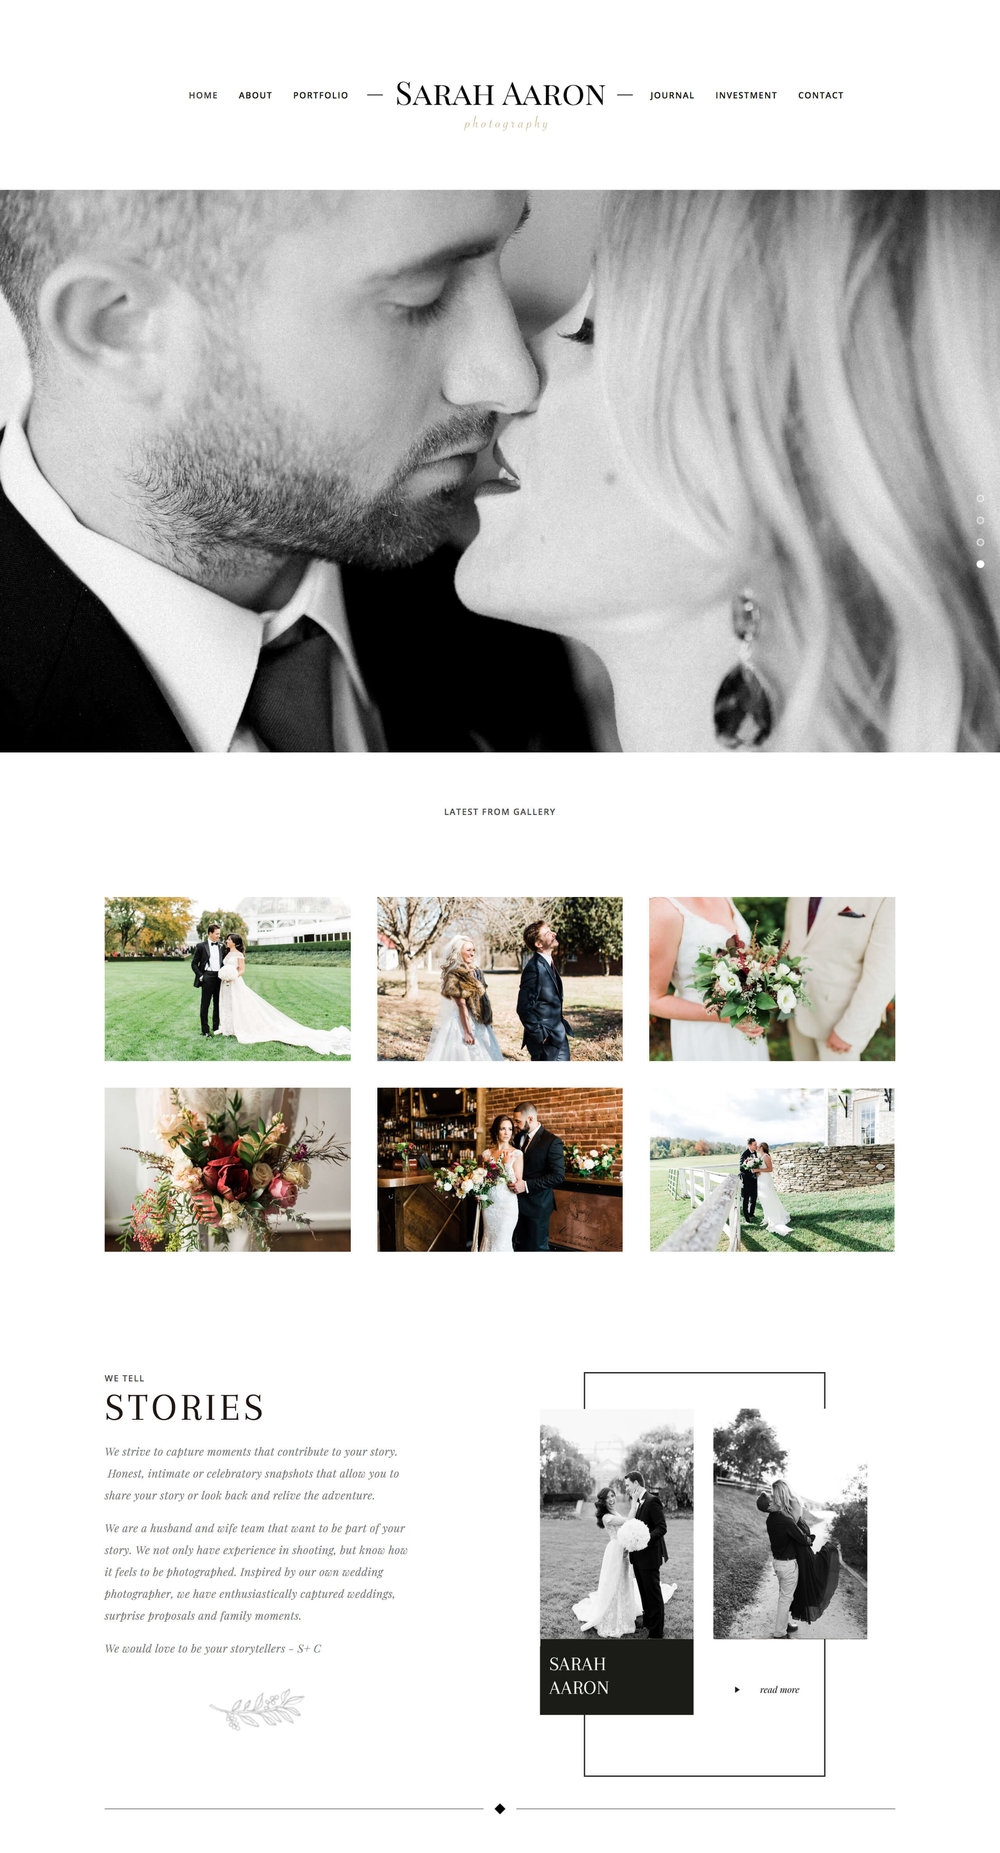 squarespace-website-design-sara-haaron-photography.jpg